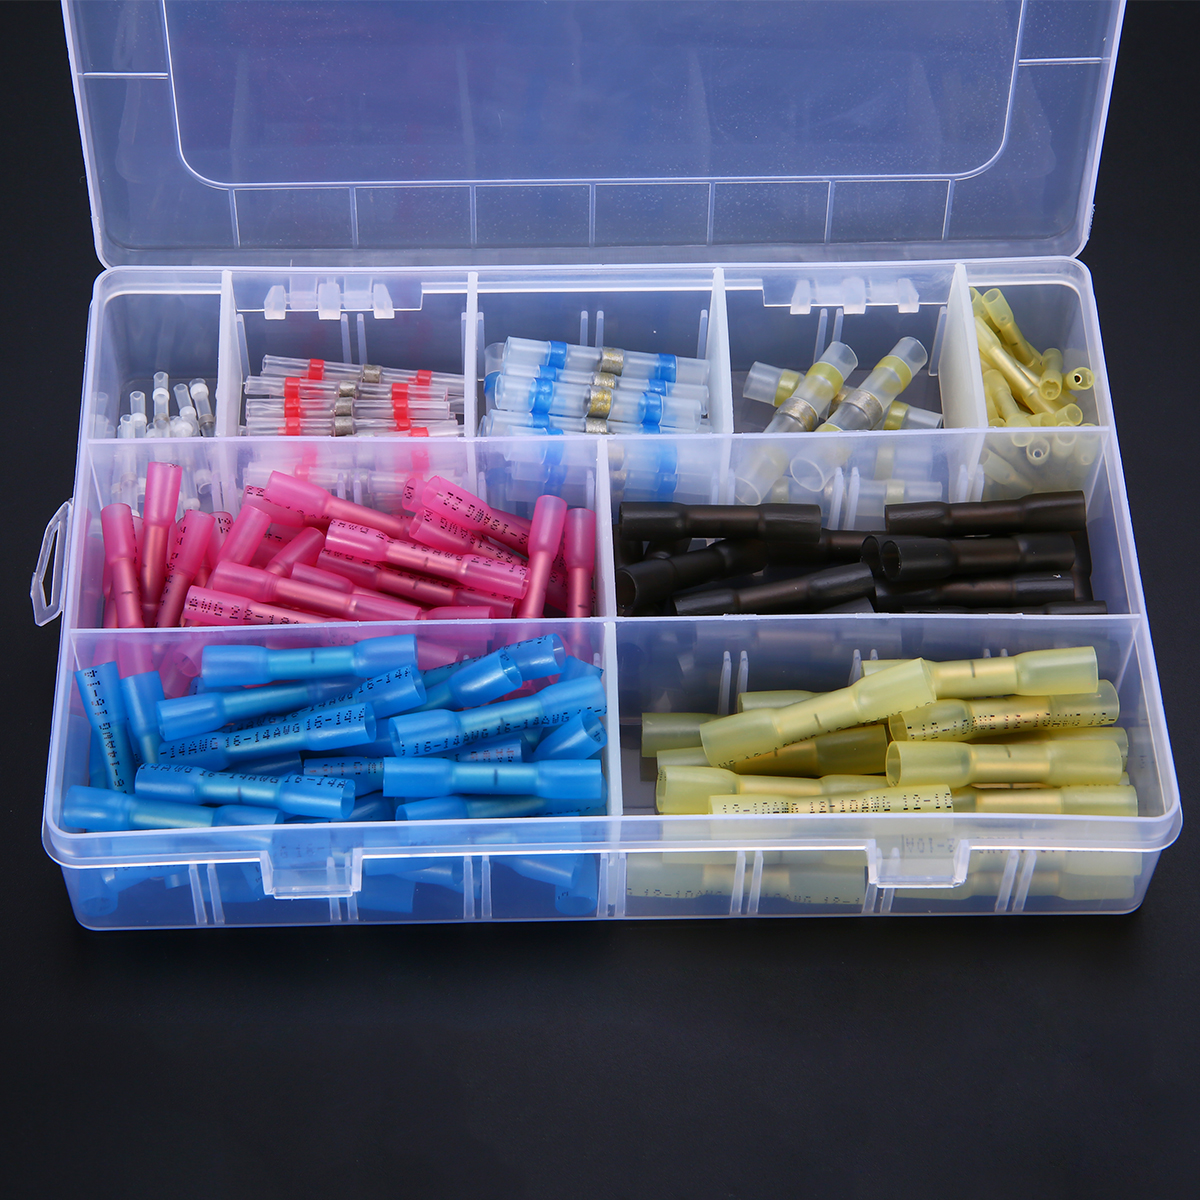 200pcs Assorted Insulated Heat Shrink Terminals kit Waterproof Heat Shrink Wire Butt Connectors Soldering Connectors with Box цены онлайн